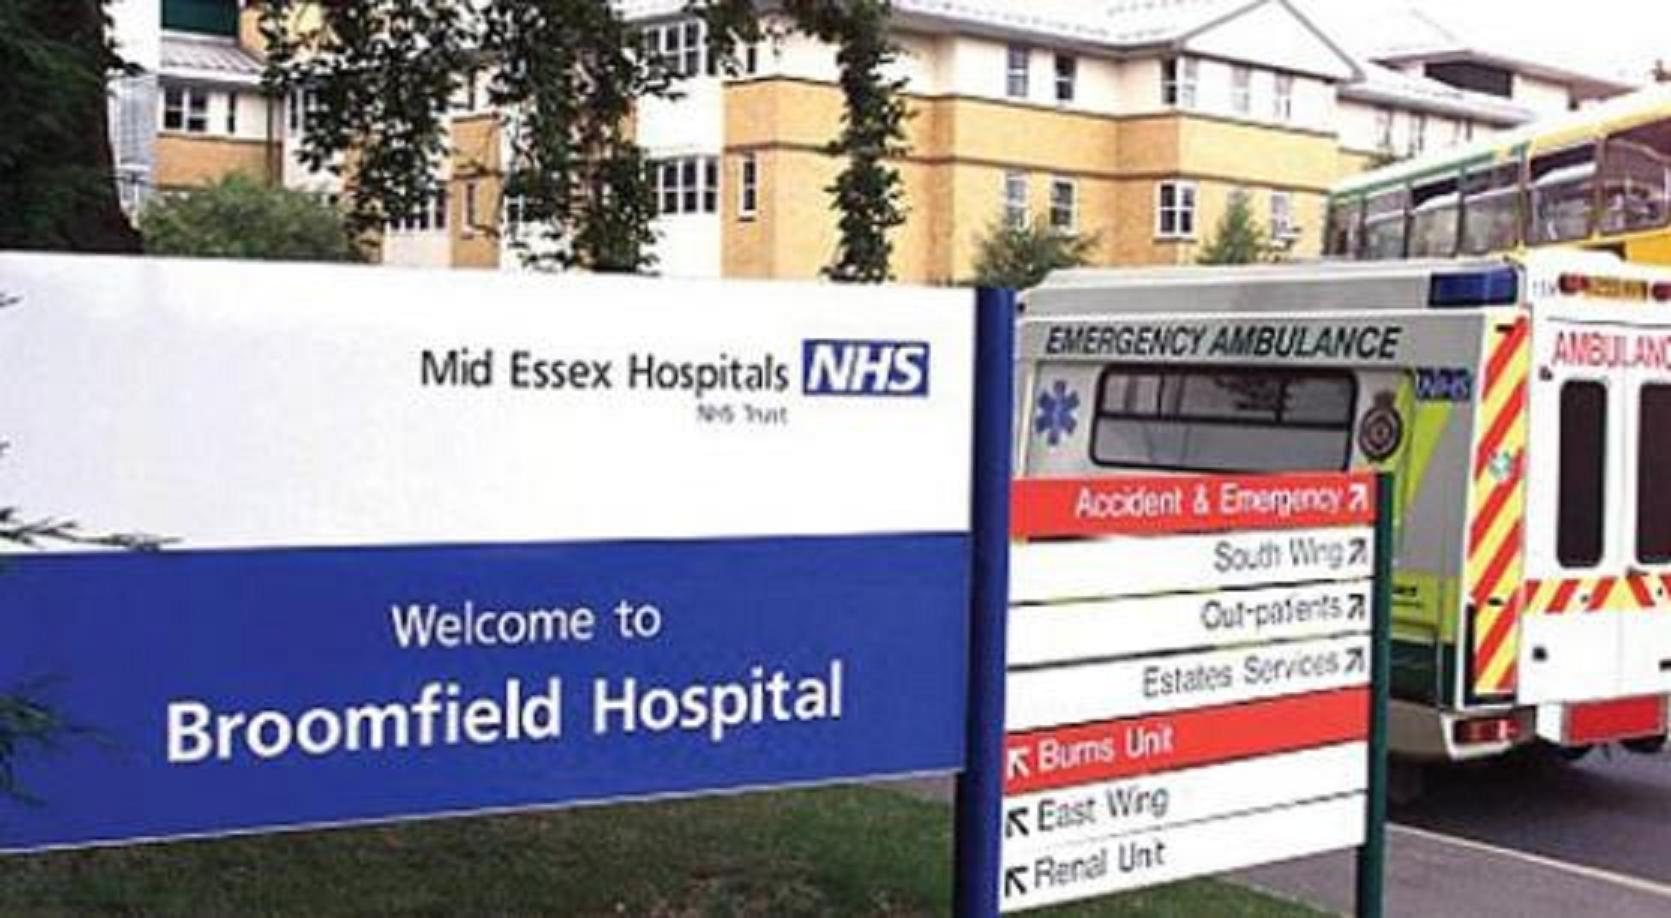 Broomfield Hospital was too unsafe for Harrison Ward to stay